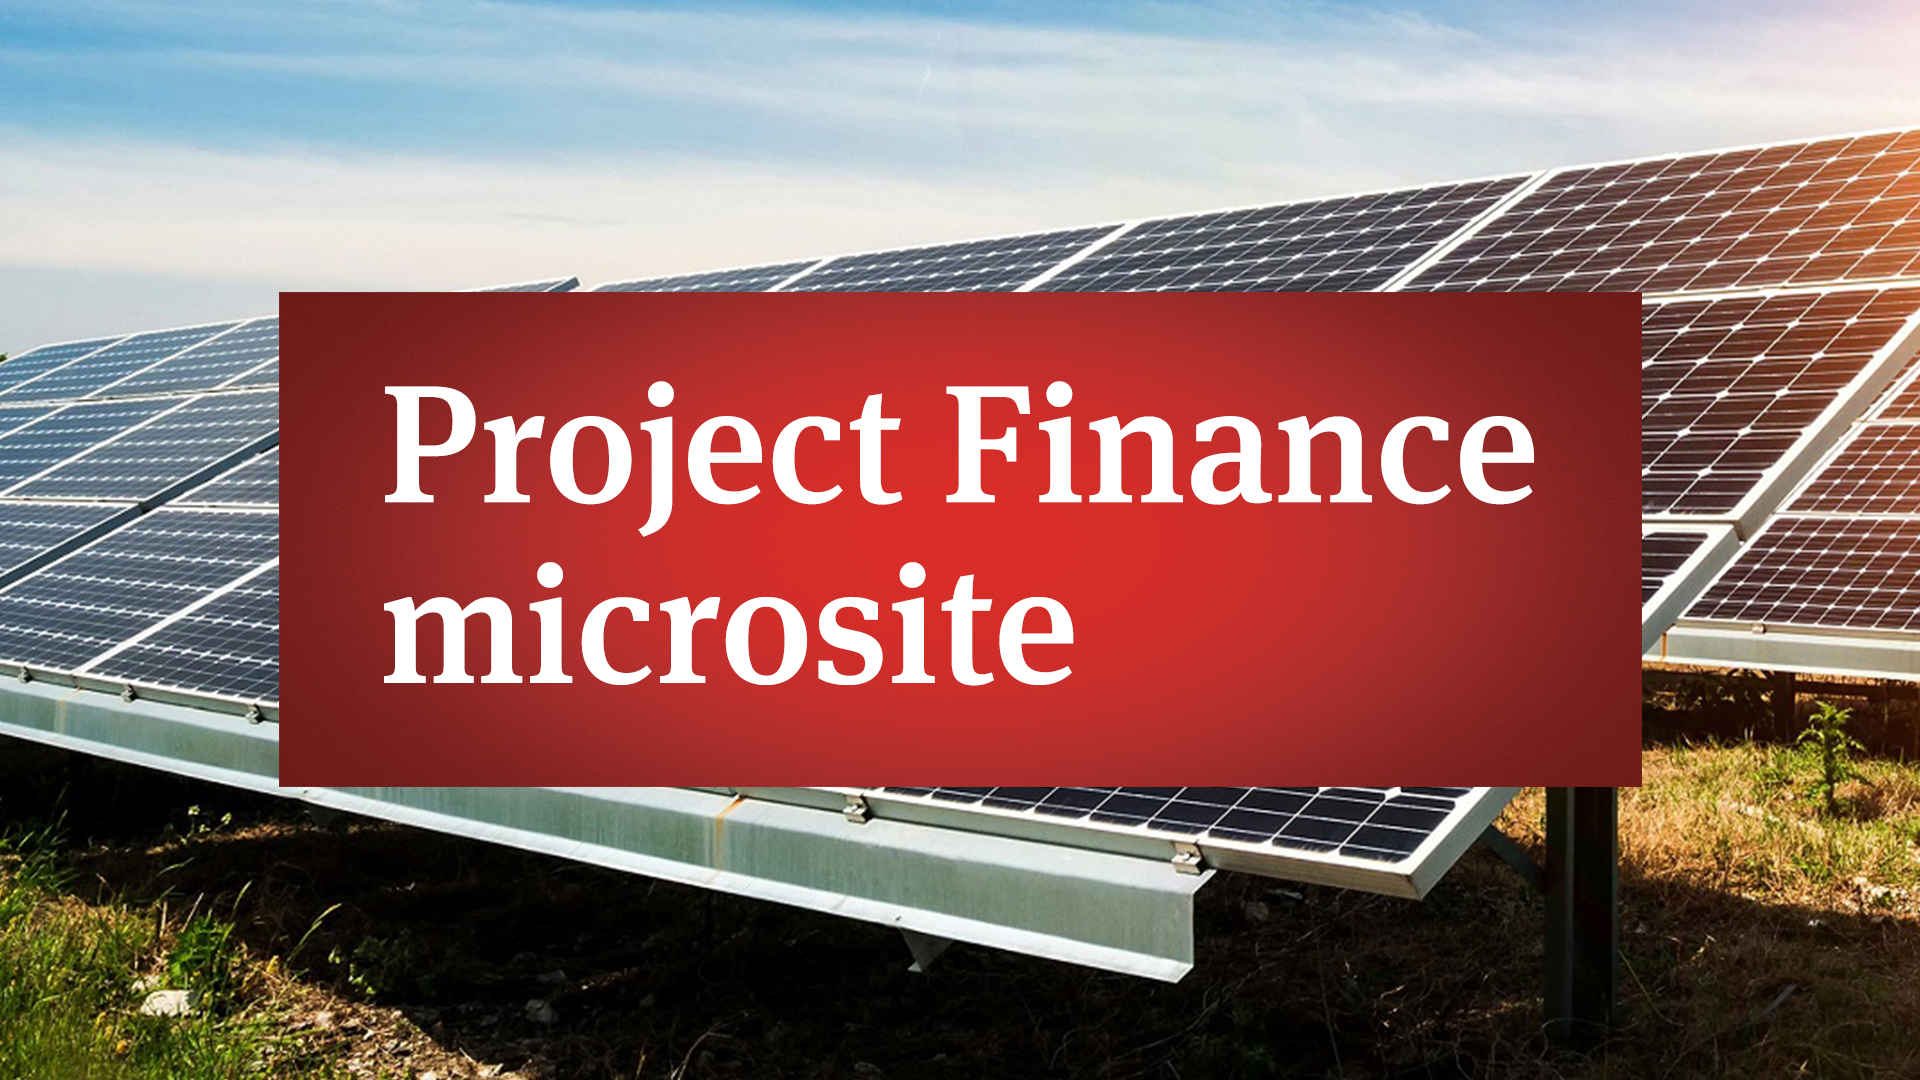 Project Finance microsite